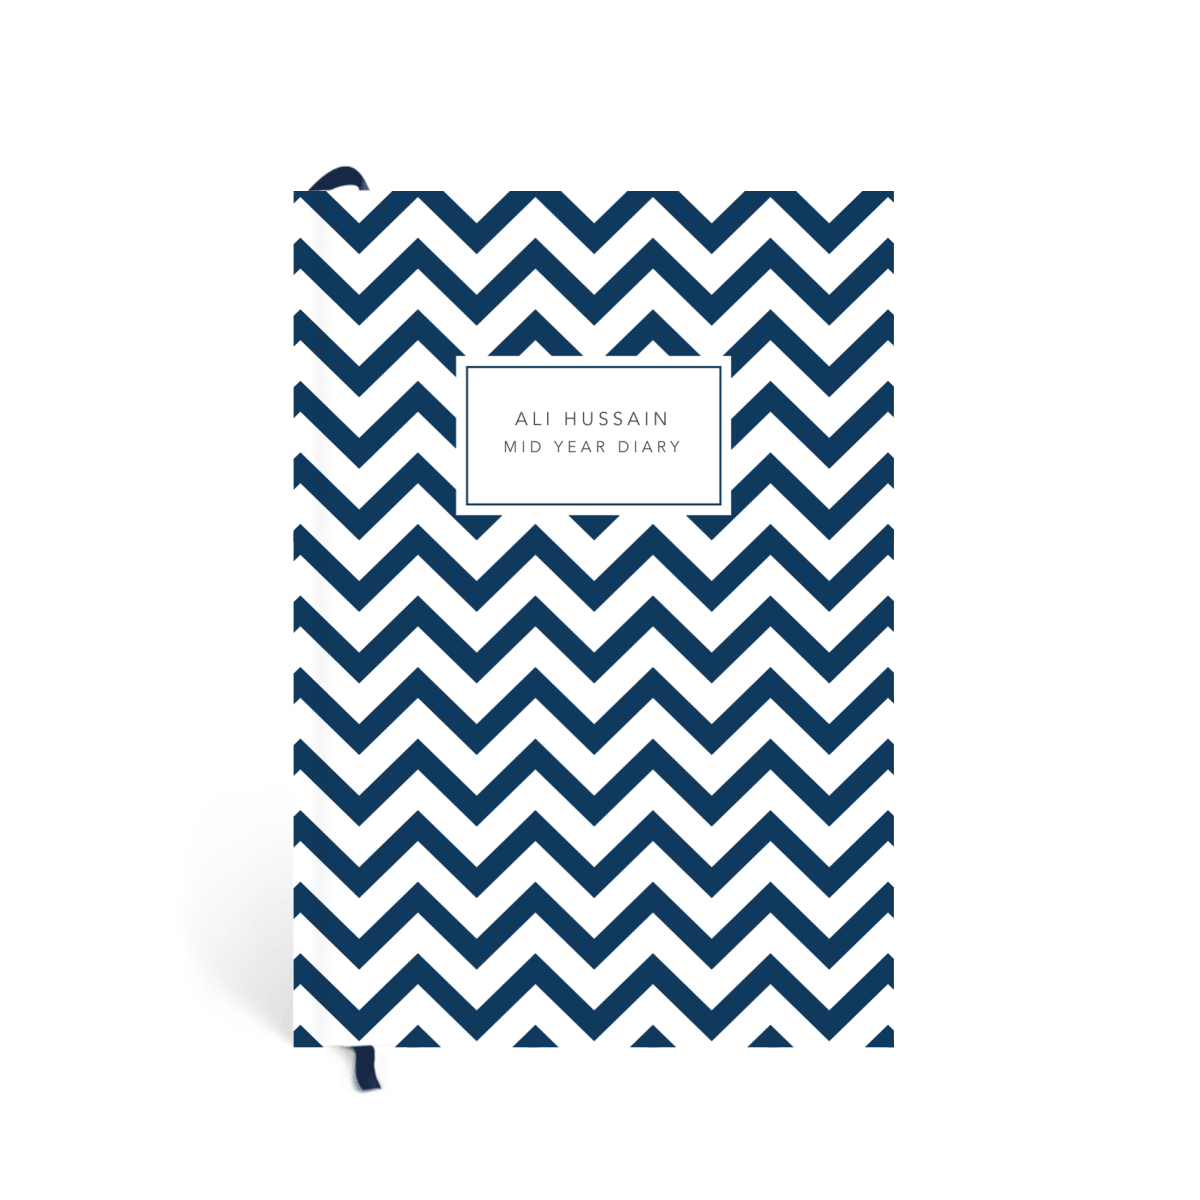 Https%3a%2f%2fwww.papier.com%2fproduct image%2f72313%2f36%2fnavy chevrons 17041 front 1555527742.png?ixlib=rb 1.1